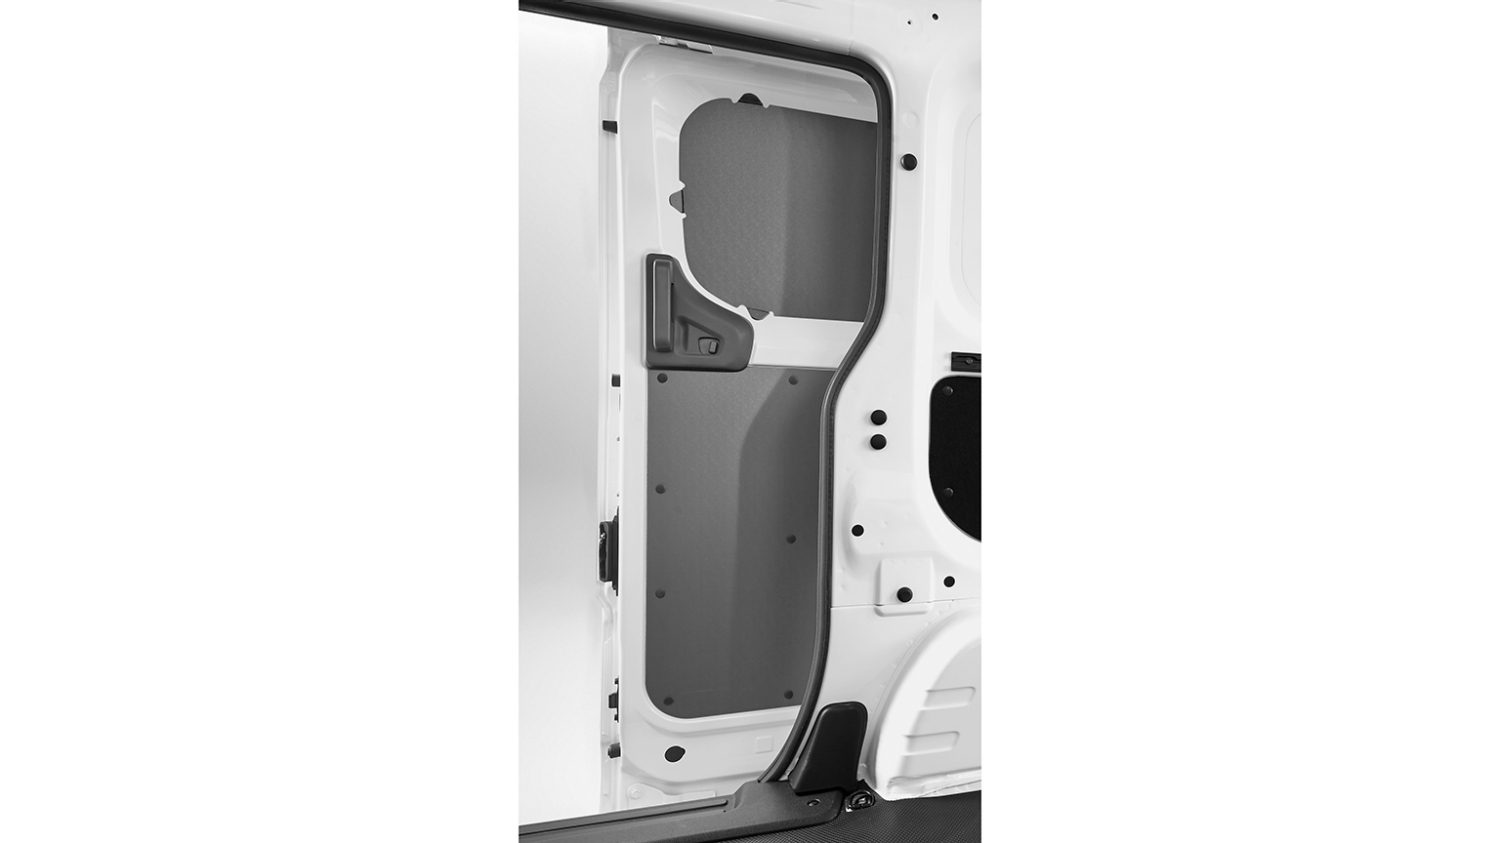 Nissan NV200 - Interior - Sliding door plastic protection (complete protection 4 parts)